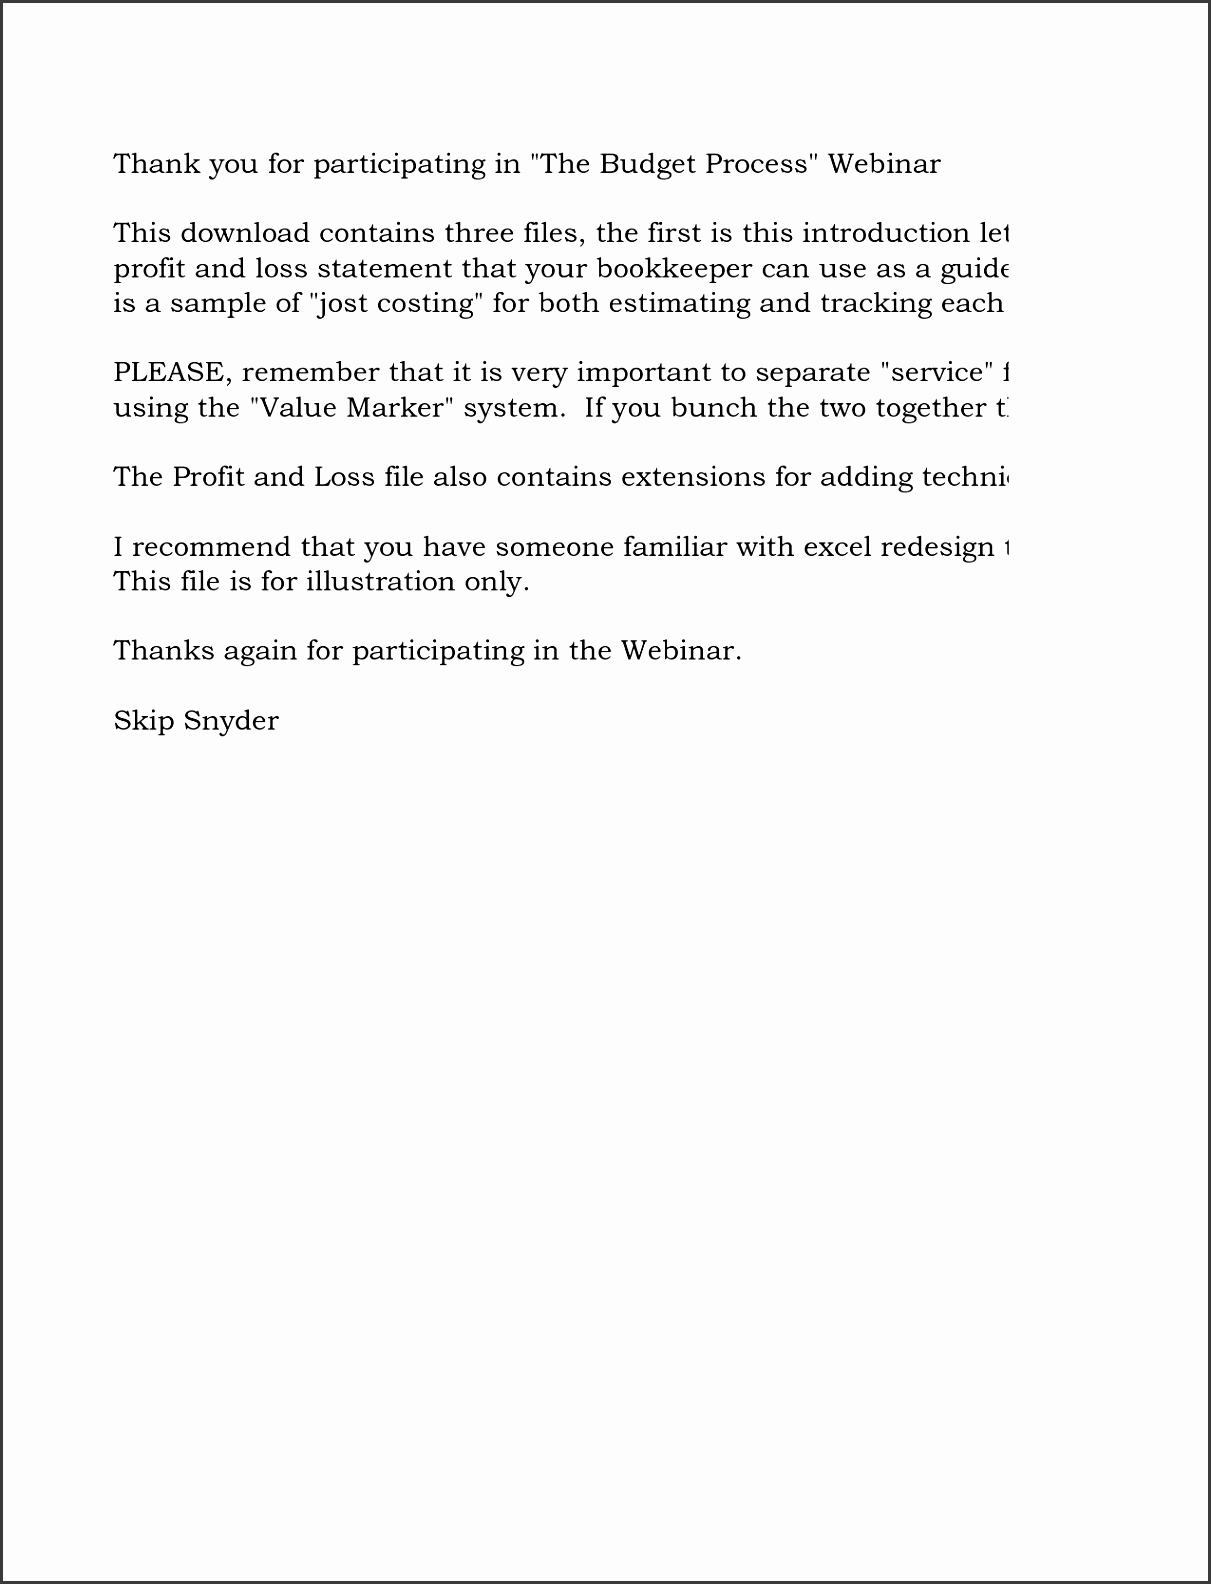 business letter introduction of pany images letter examples ideas letter format for introducing a pany image